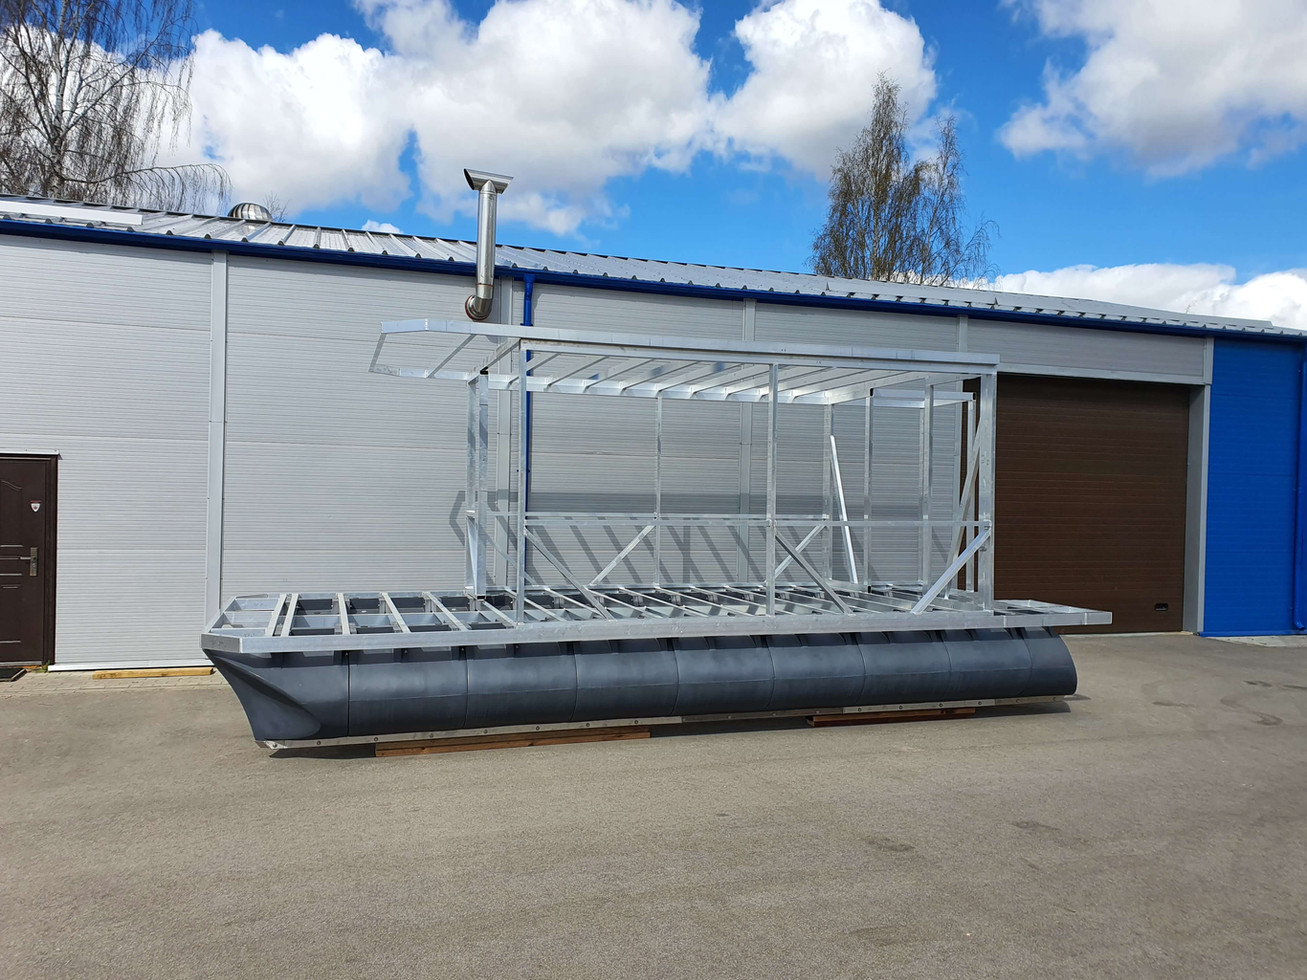 7,4m x 3m catamaran with framed superstructure